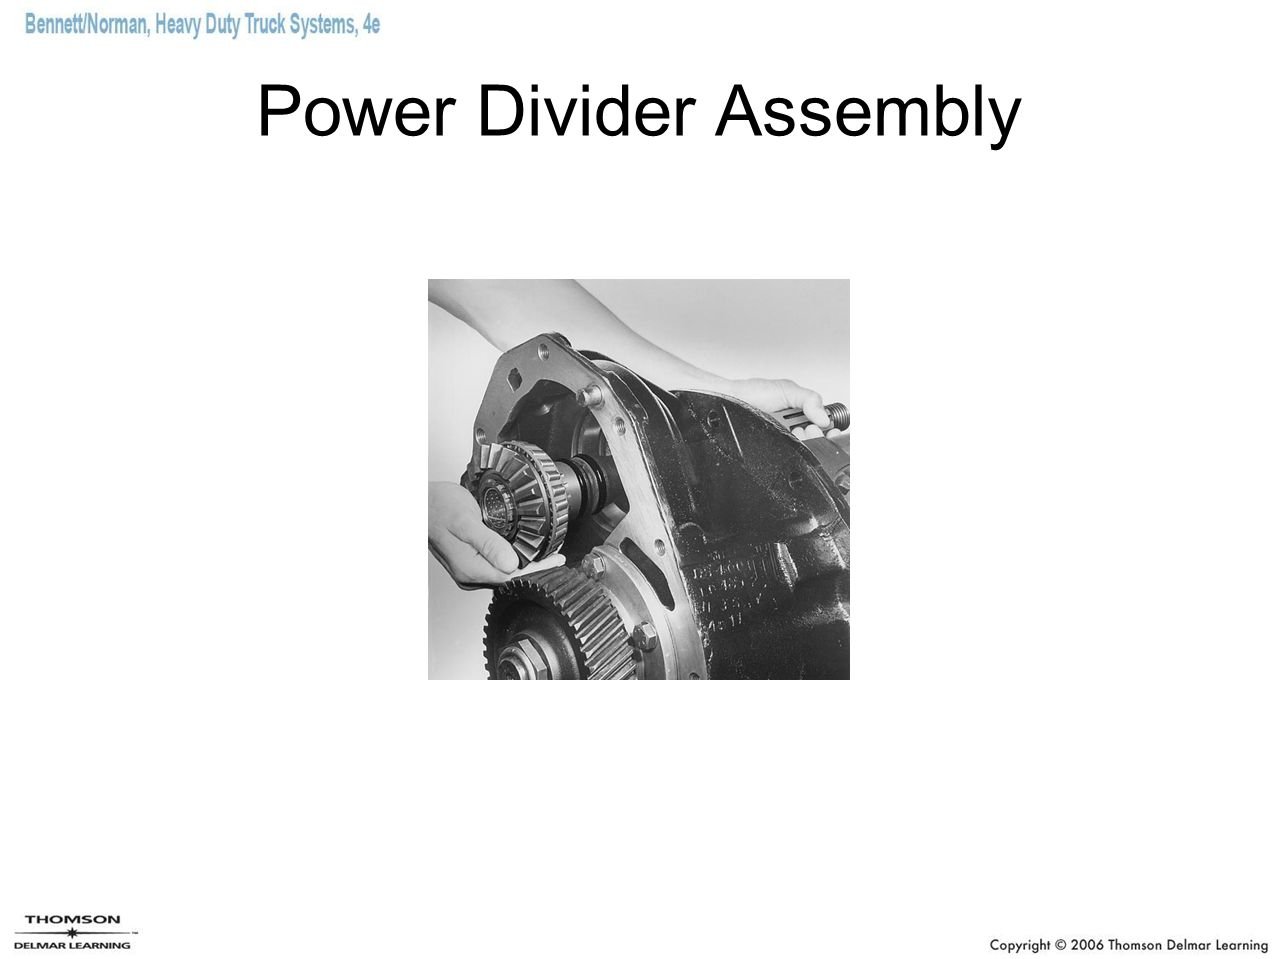 Power Divider Assembly